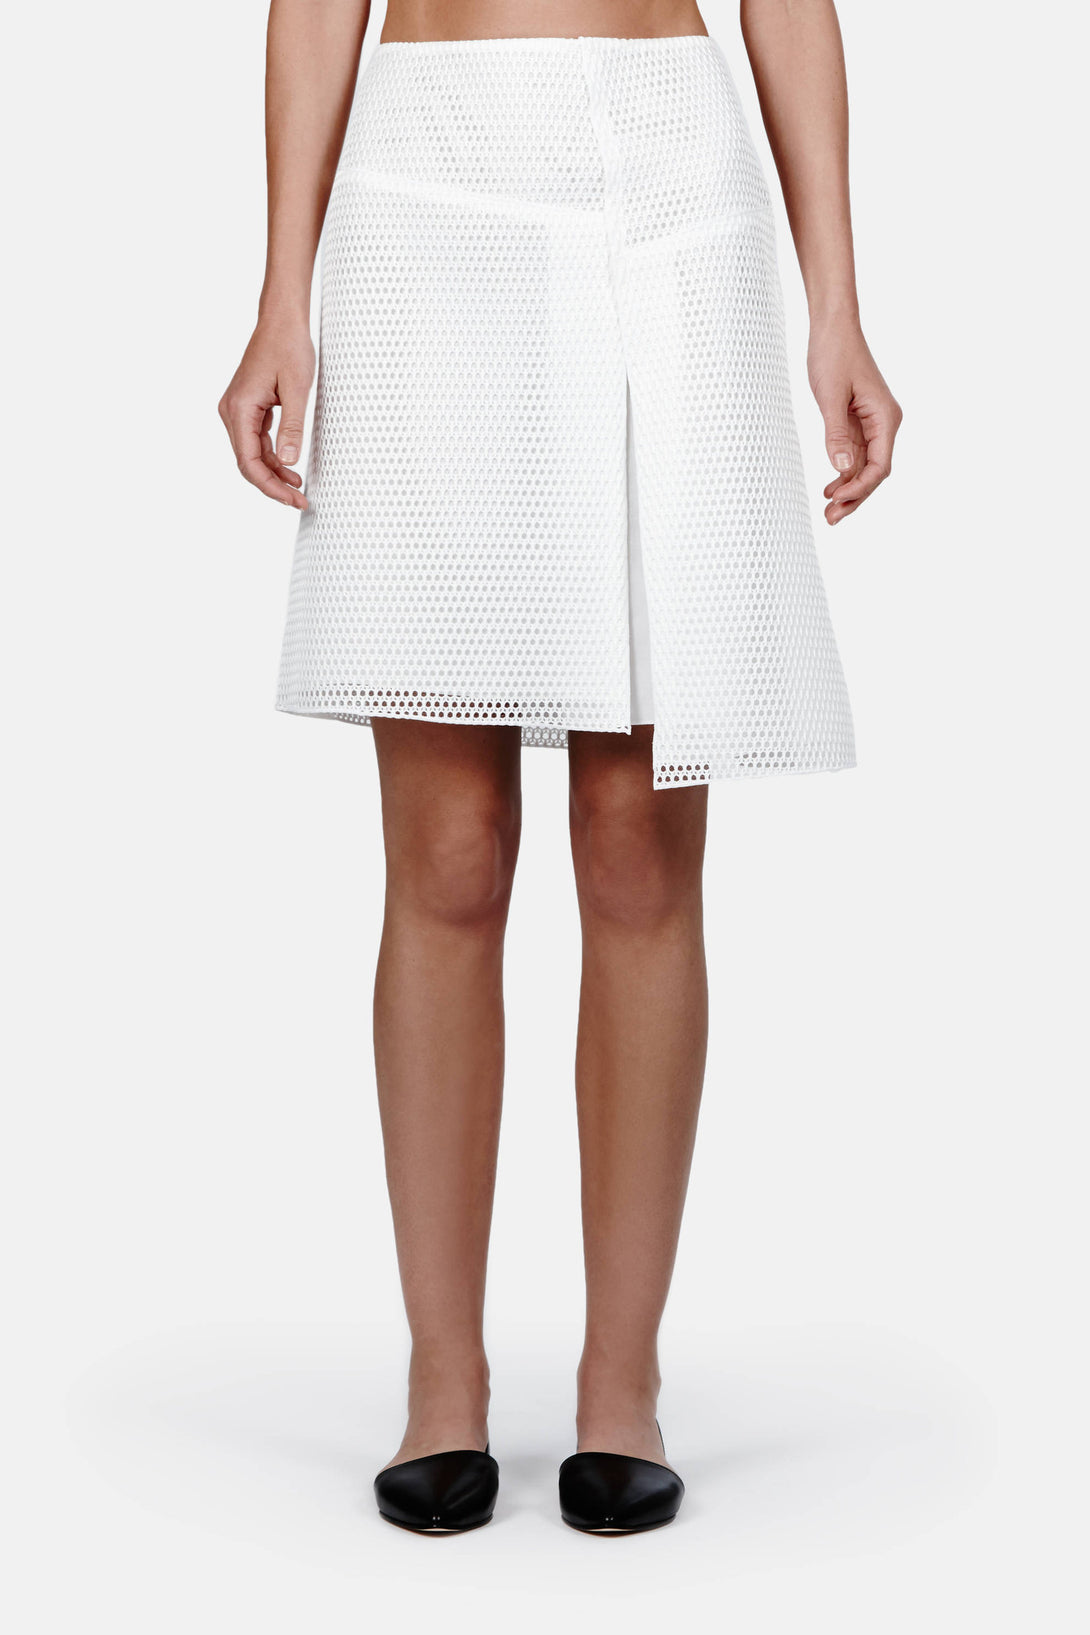 Asymmetrical Skirt - White